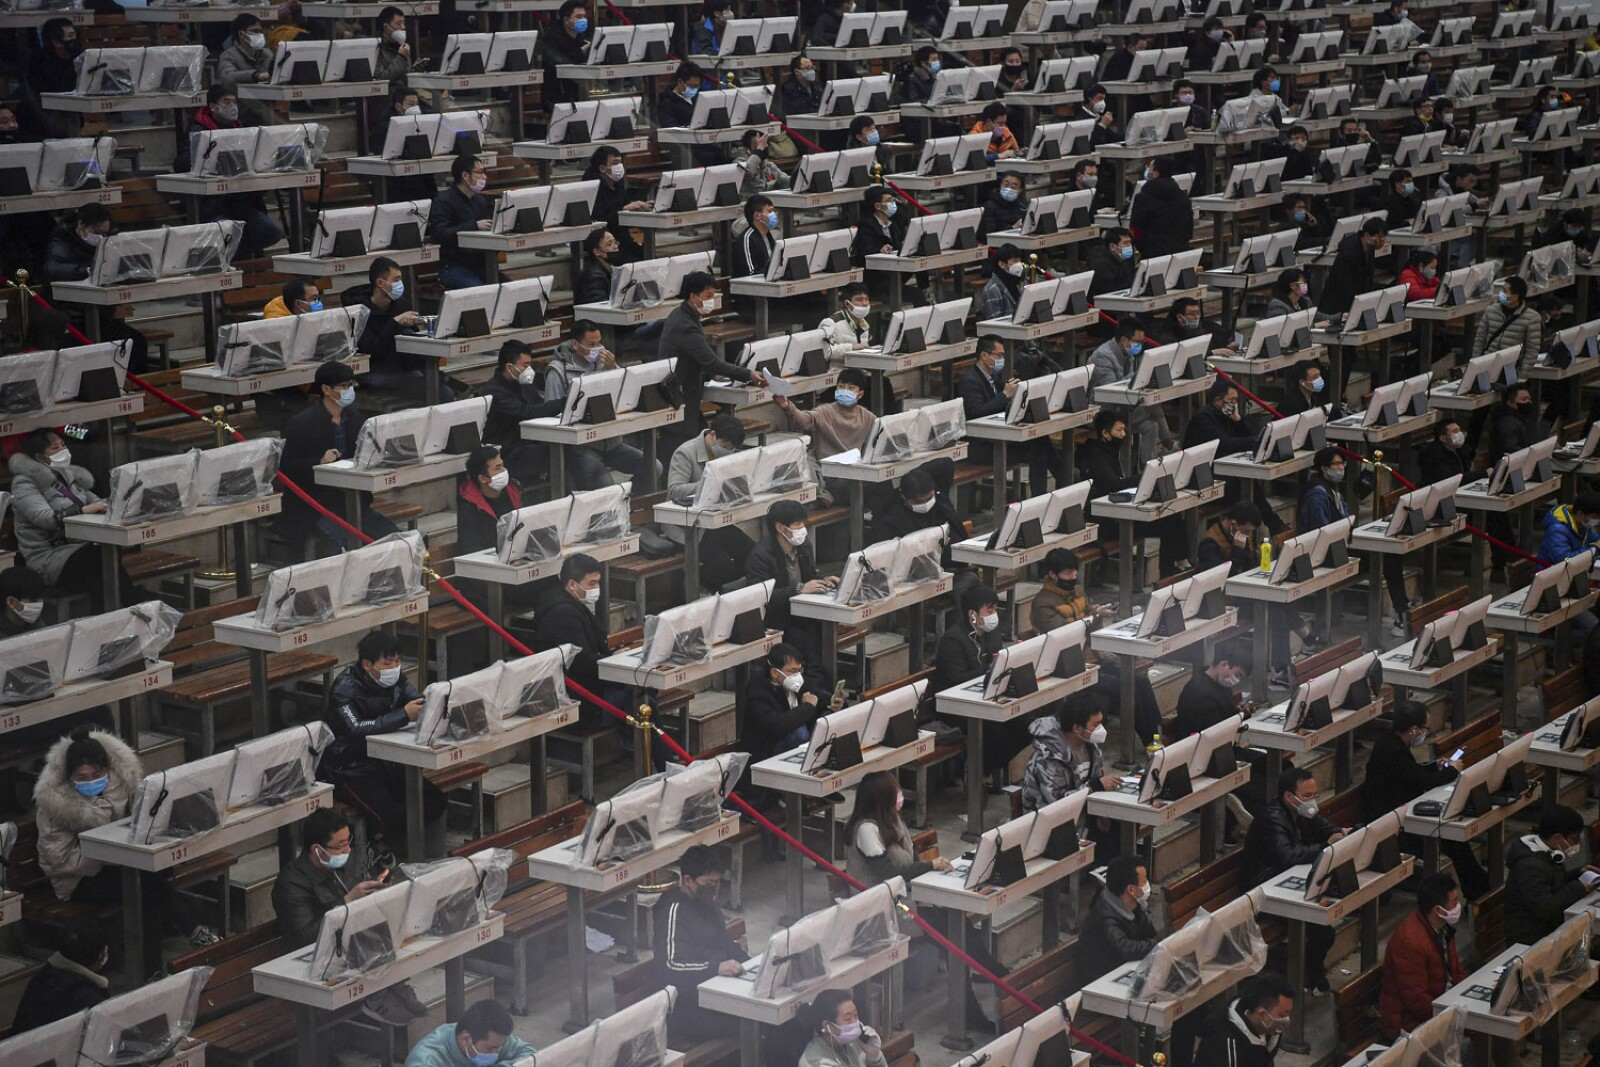 Traders wearing face masks are seen on the trading floor at a flower auction trading centre following an outbreak of the novel coronavirus in the country, in Kunming